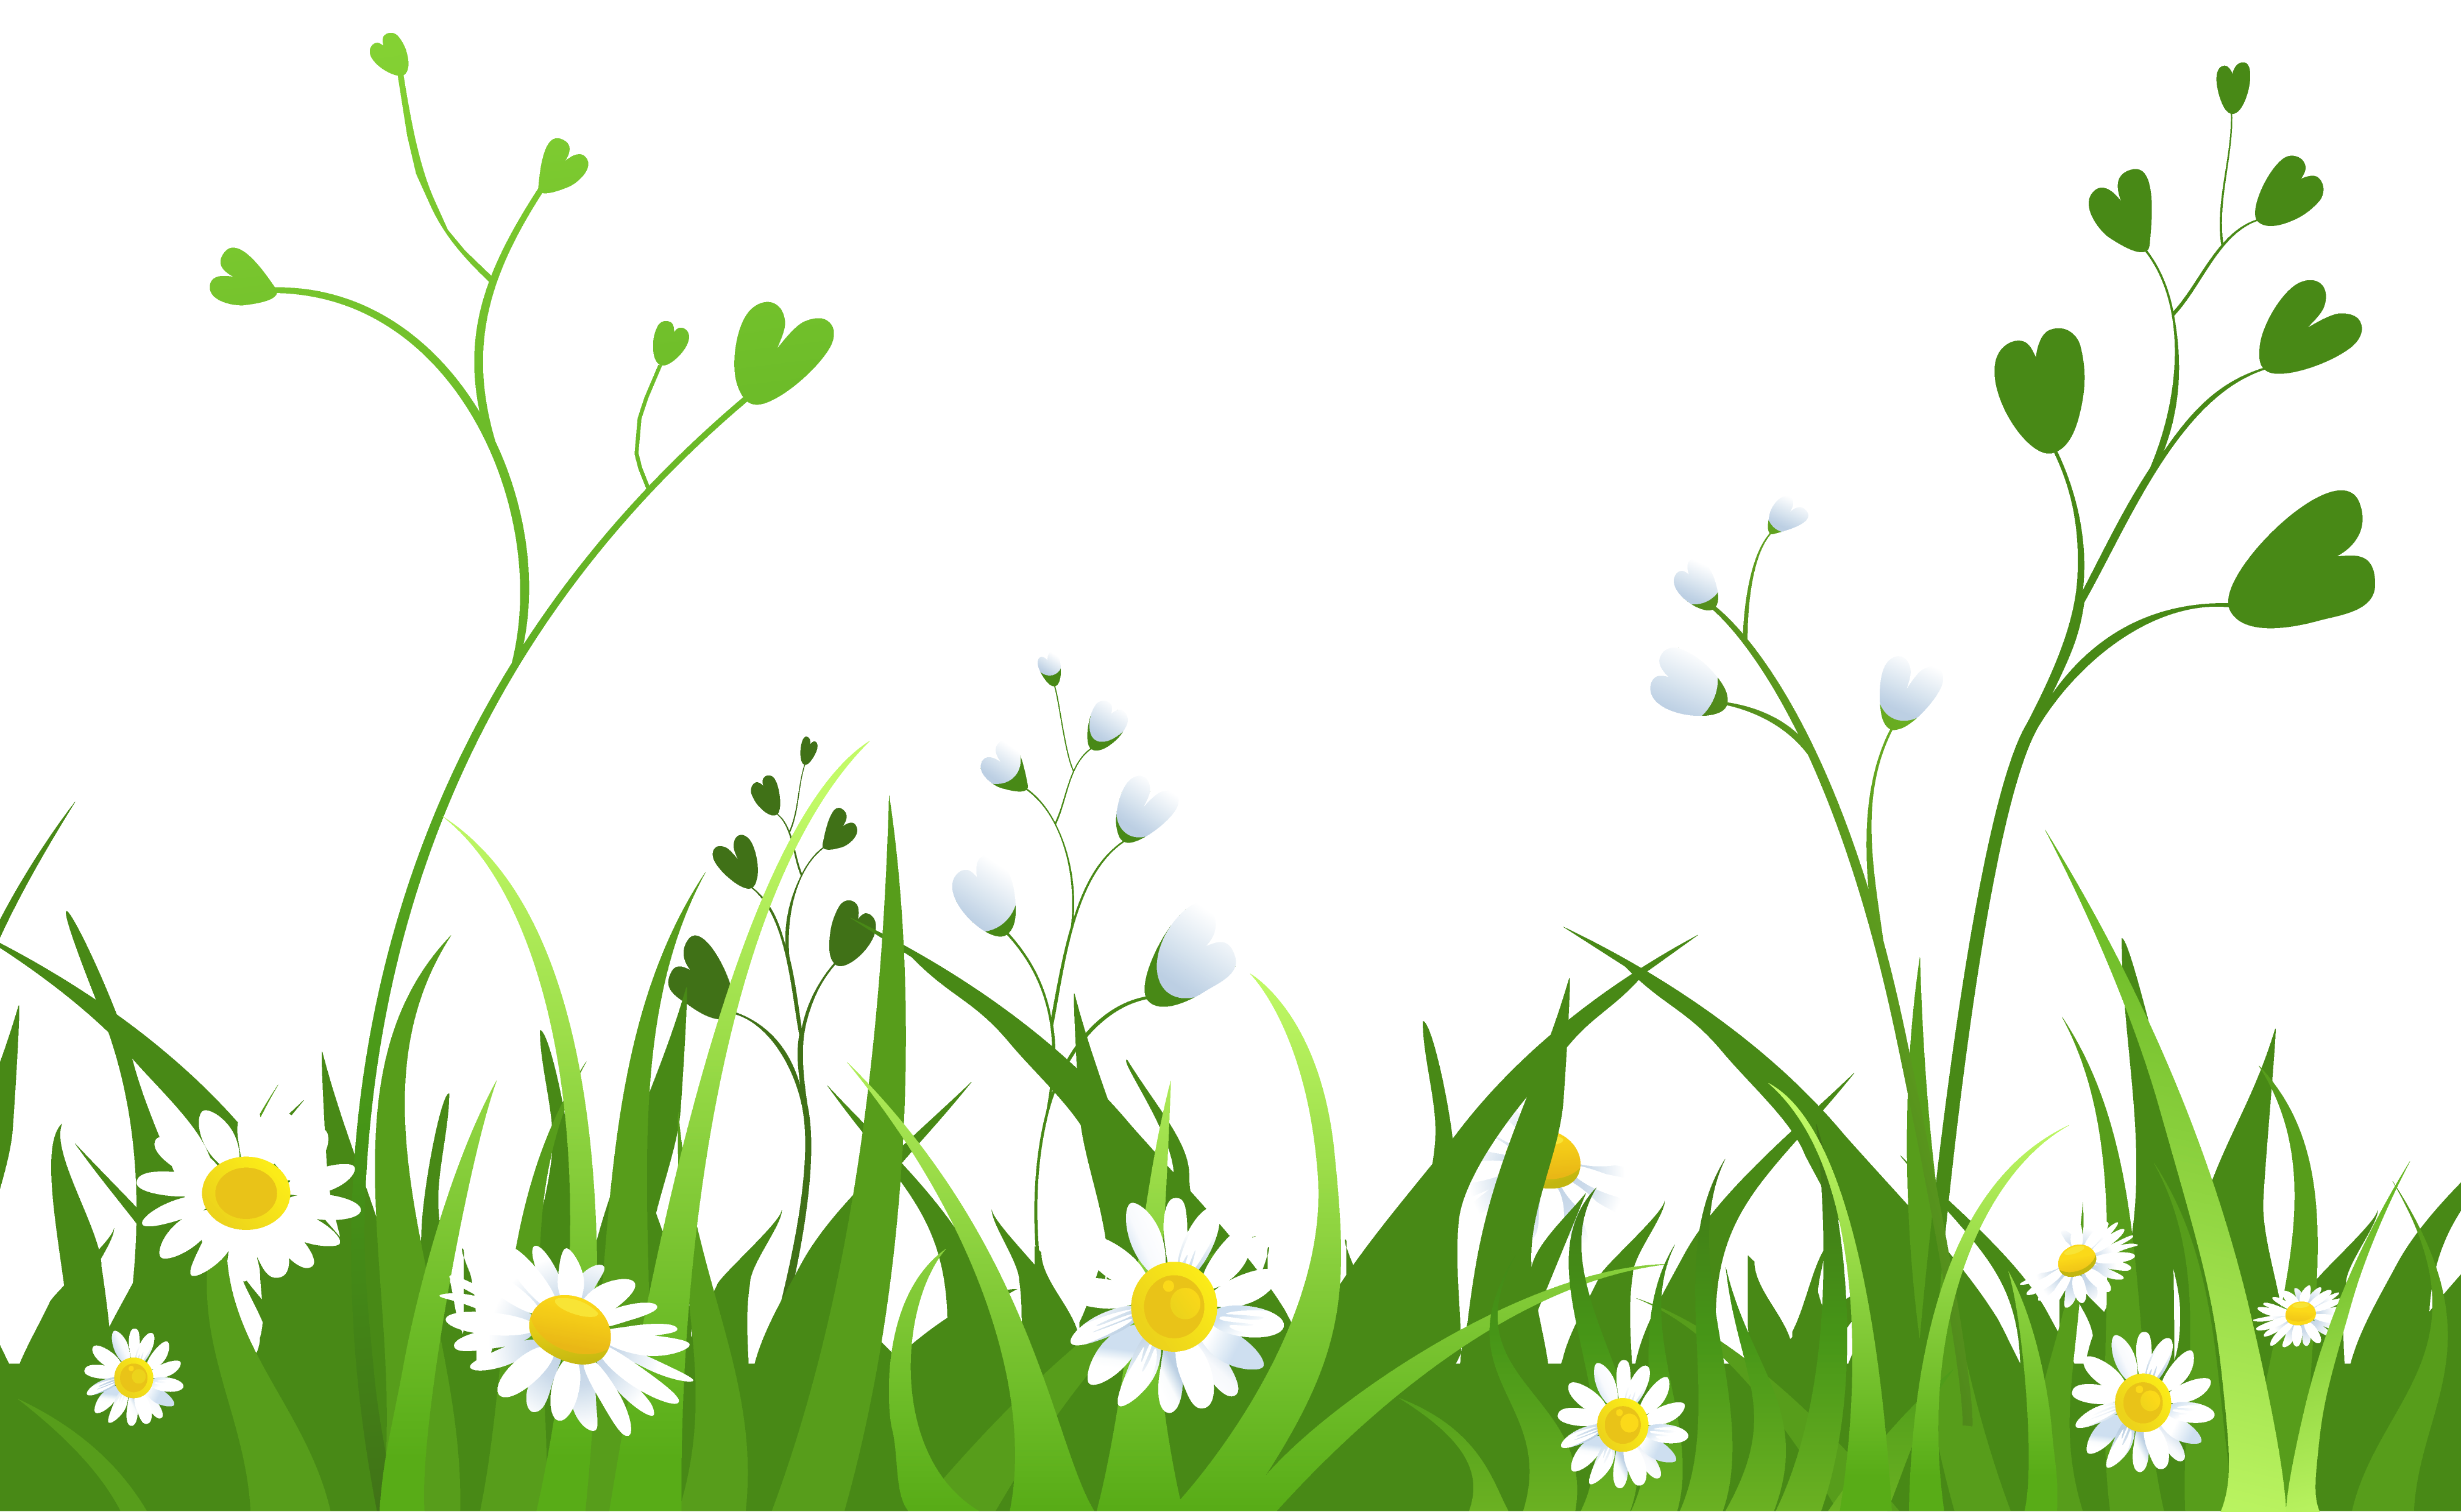 grass clipart vector 20 free Cliparts | Download images on ...